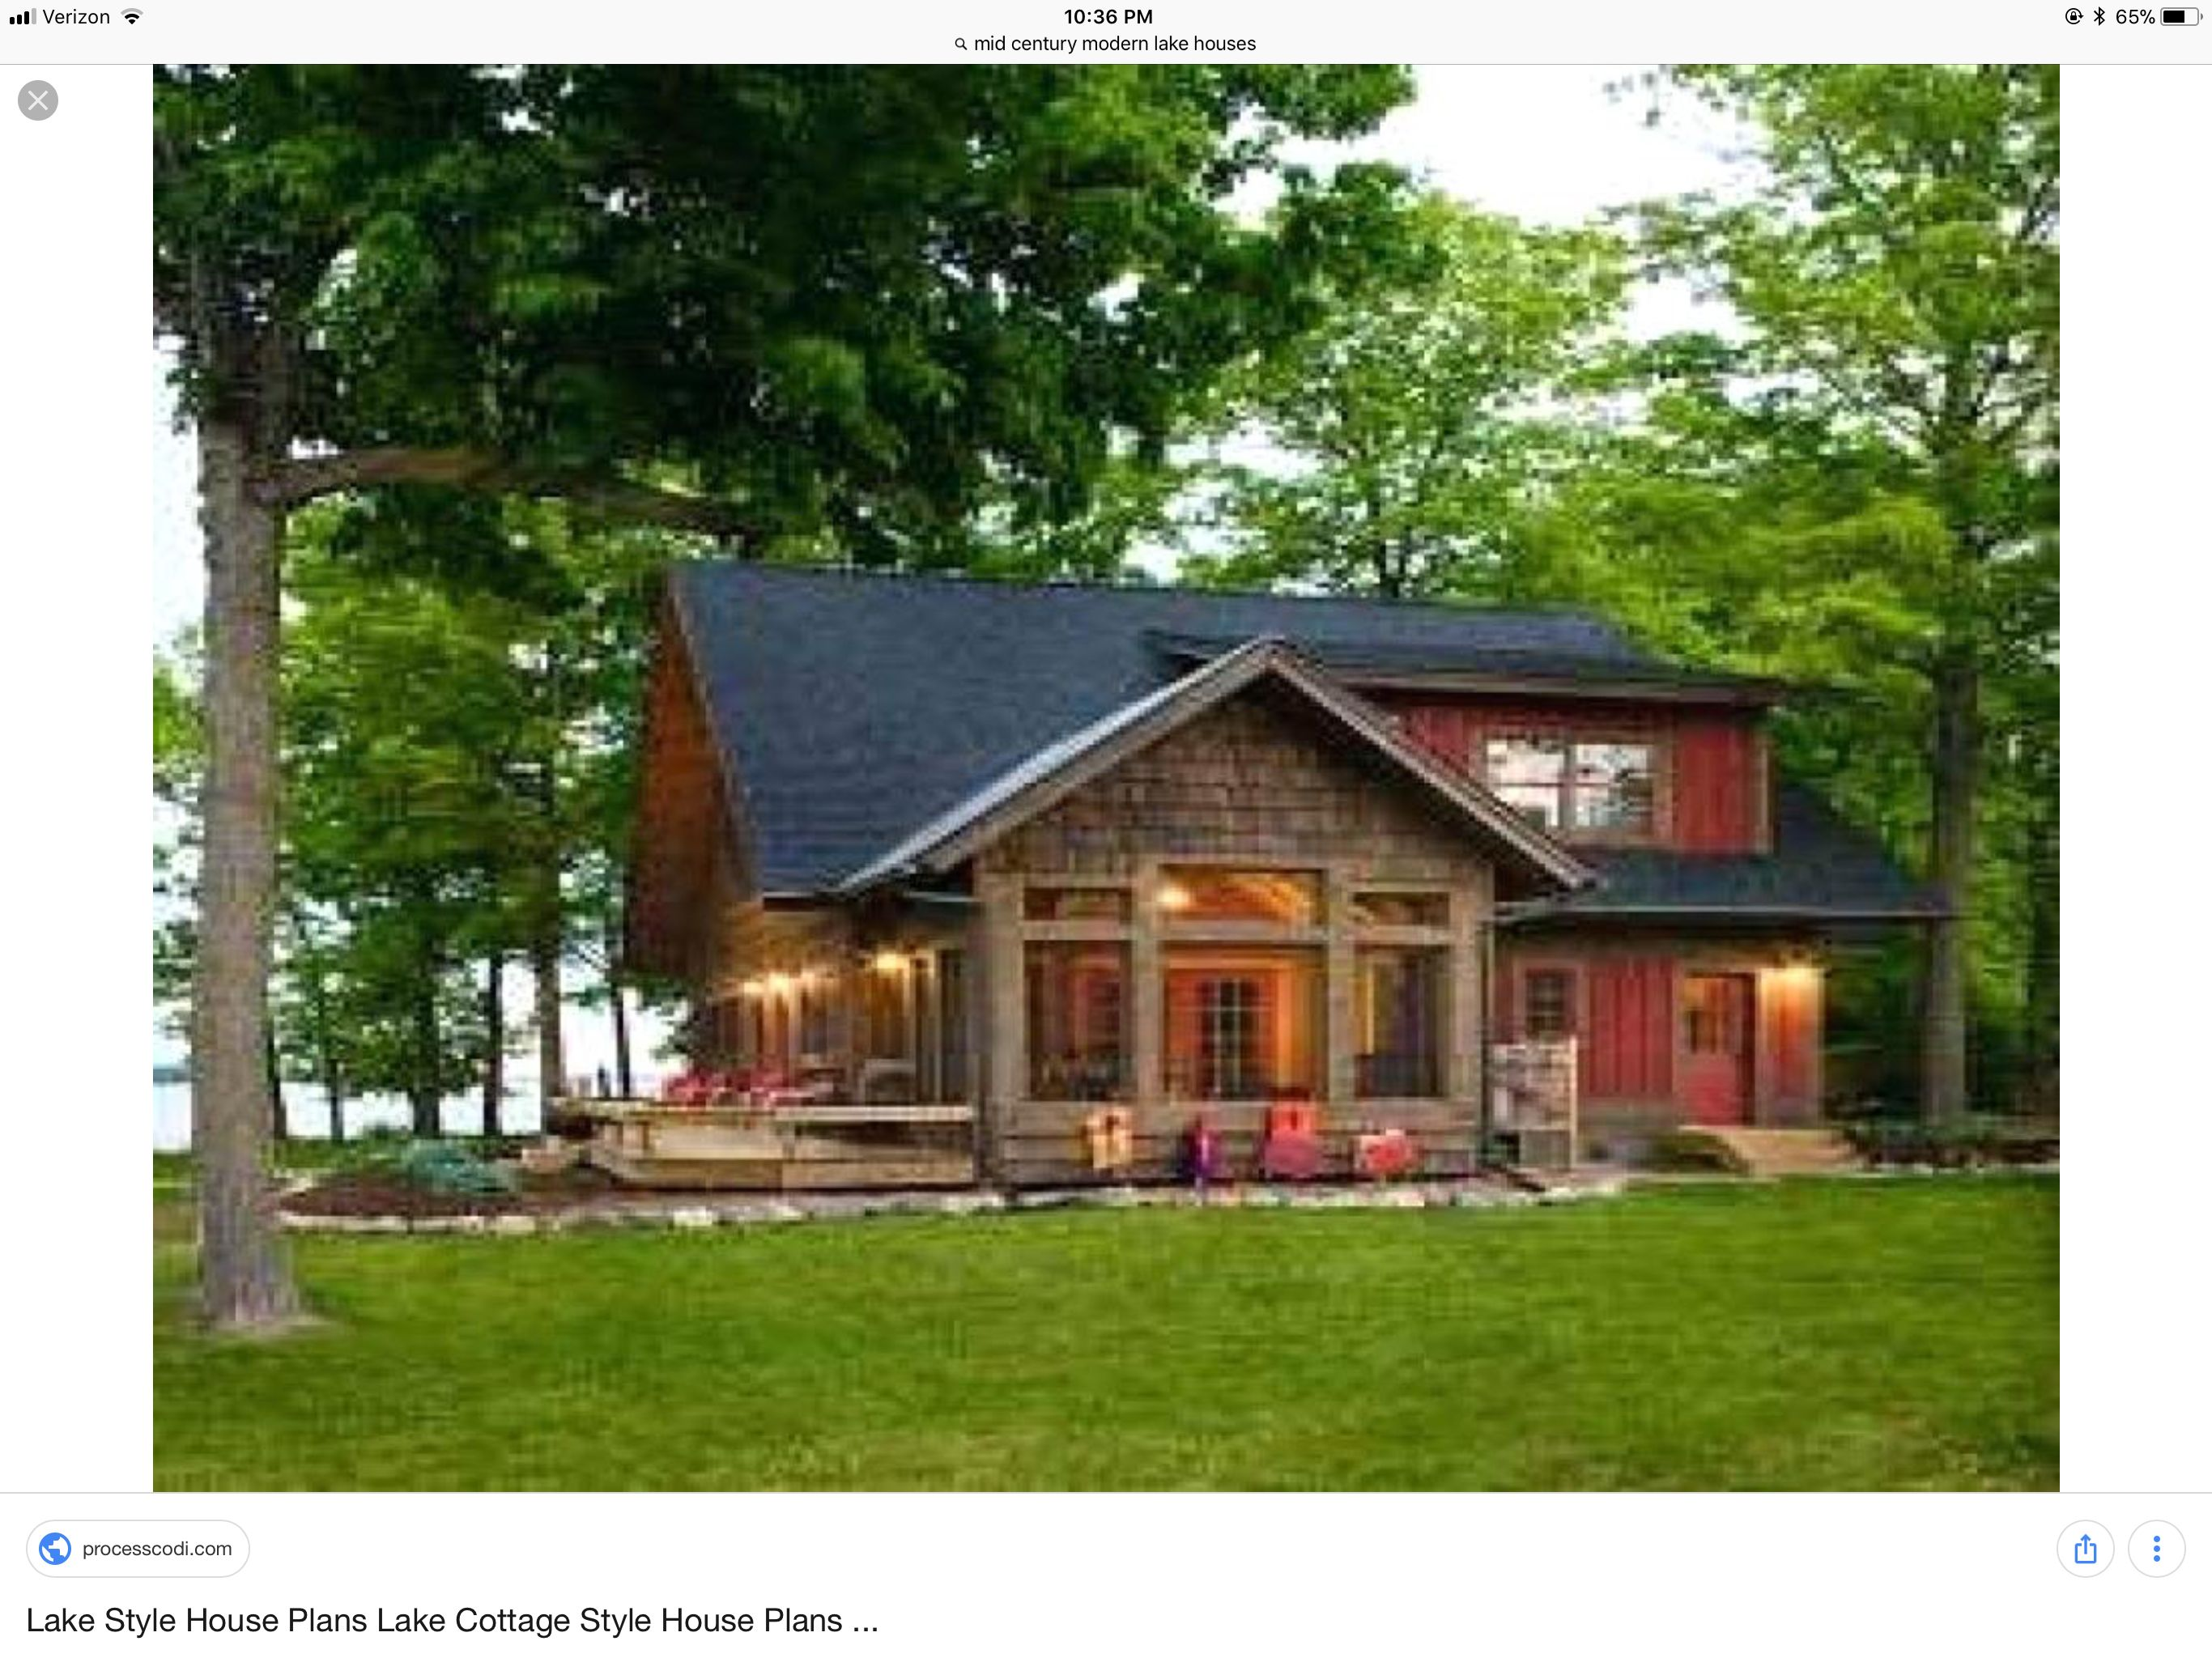 Pin By Claudio Carvalho On New Pretty Lake Cabin Design Cabins And Cottages Fishing Cabin